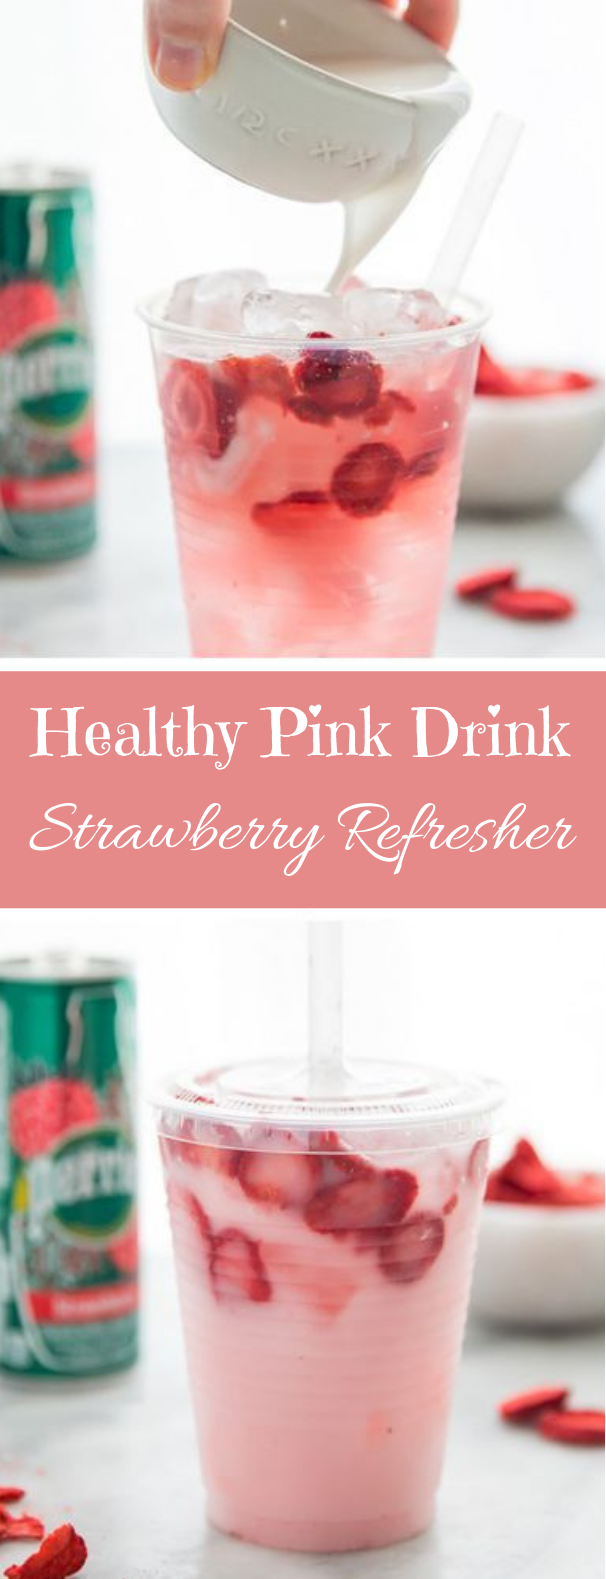 Healthy Pink Drink Strawberry Refresher #strawberry #healthydrink